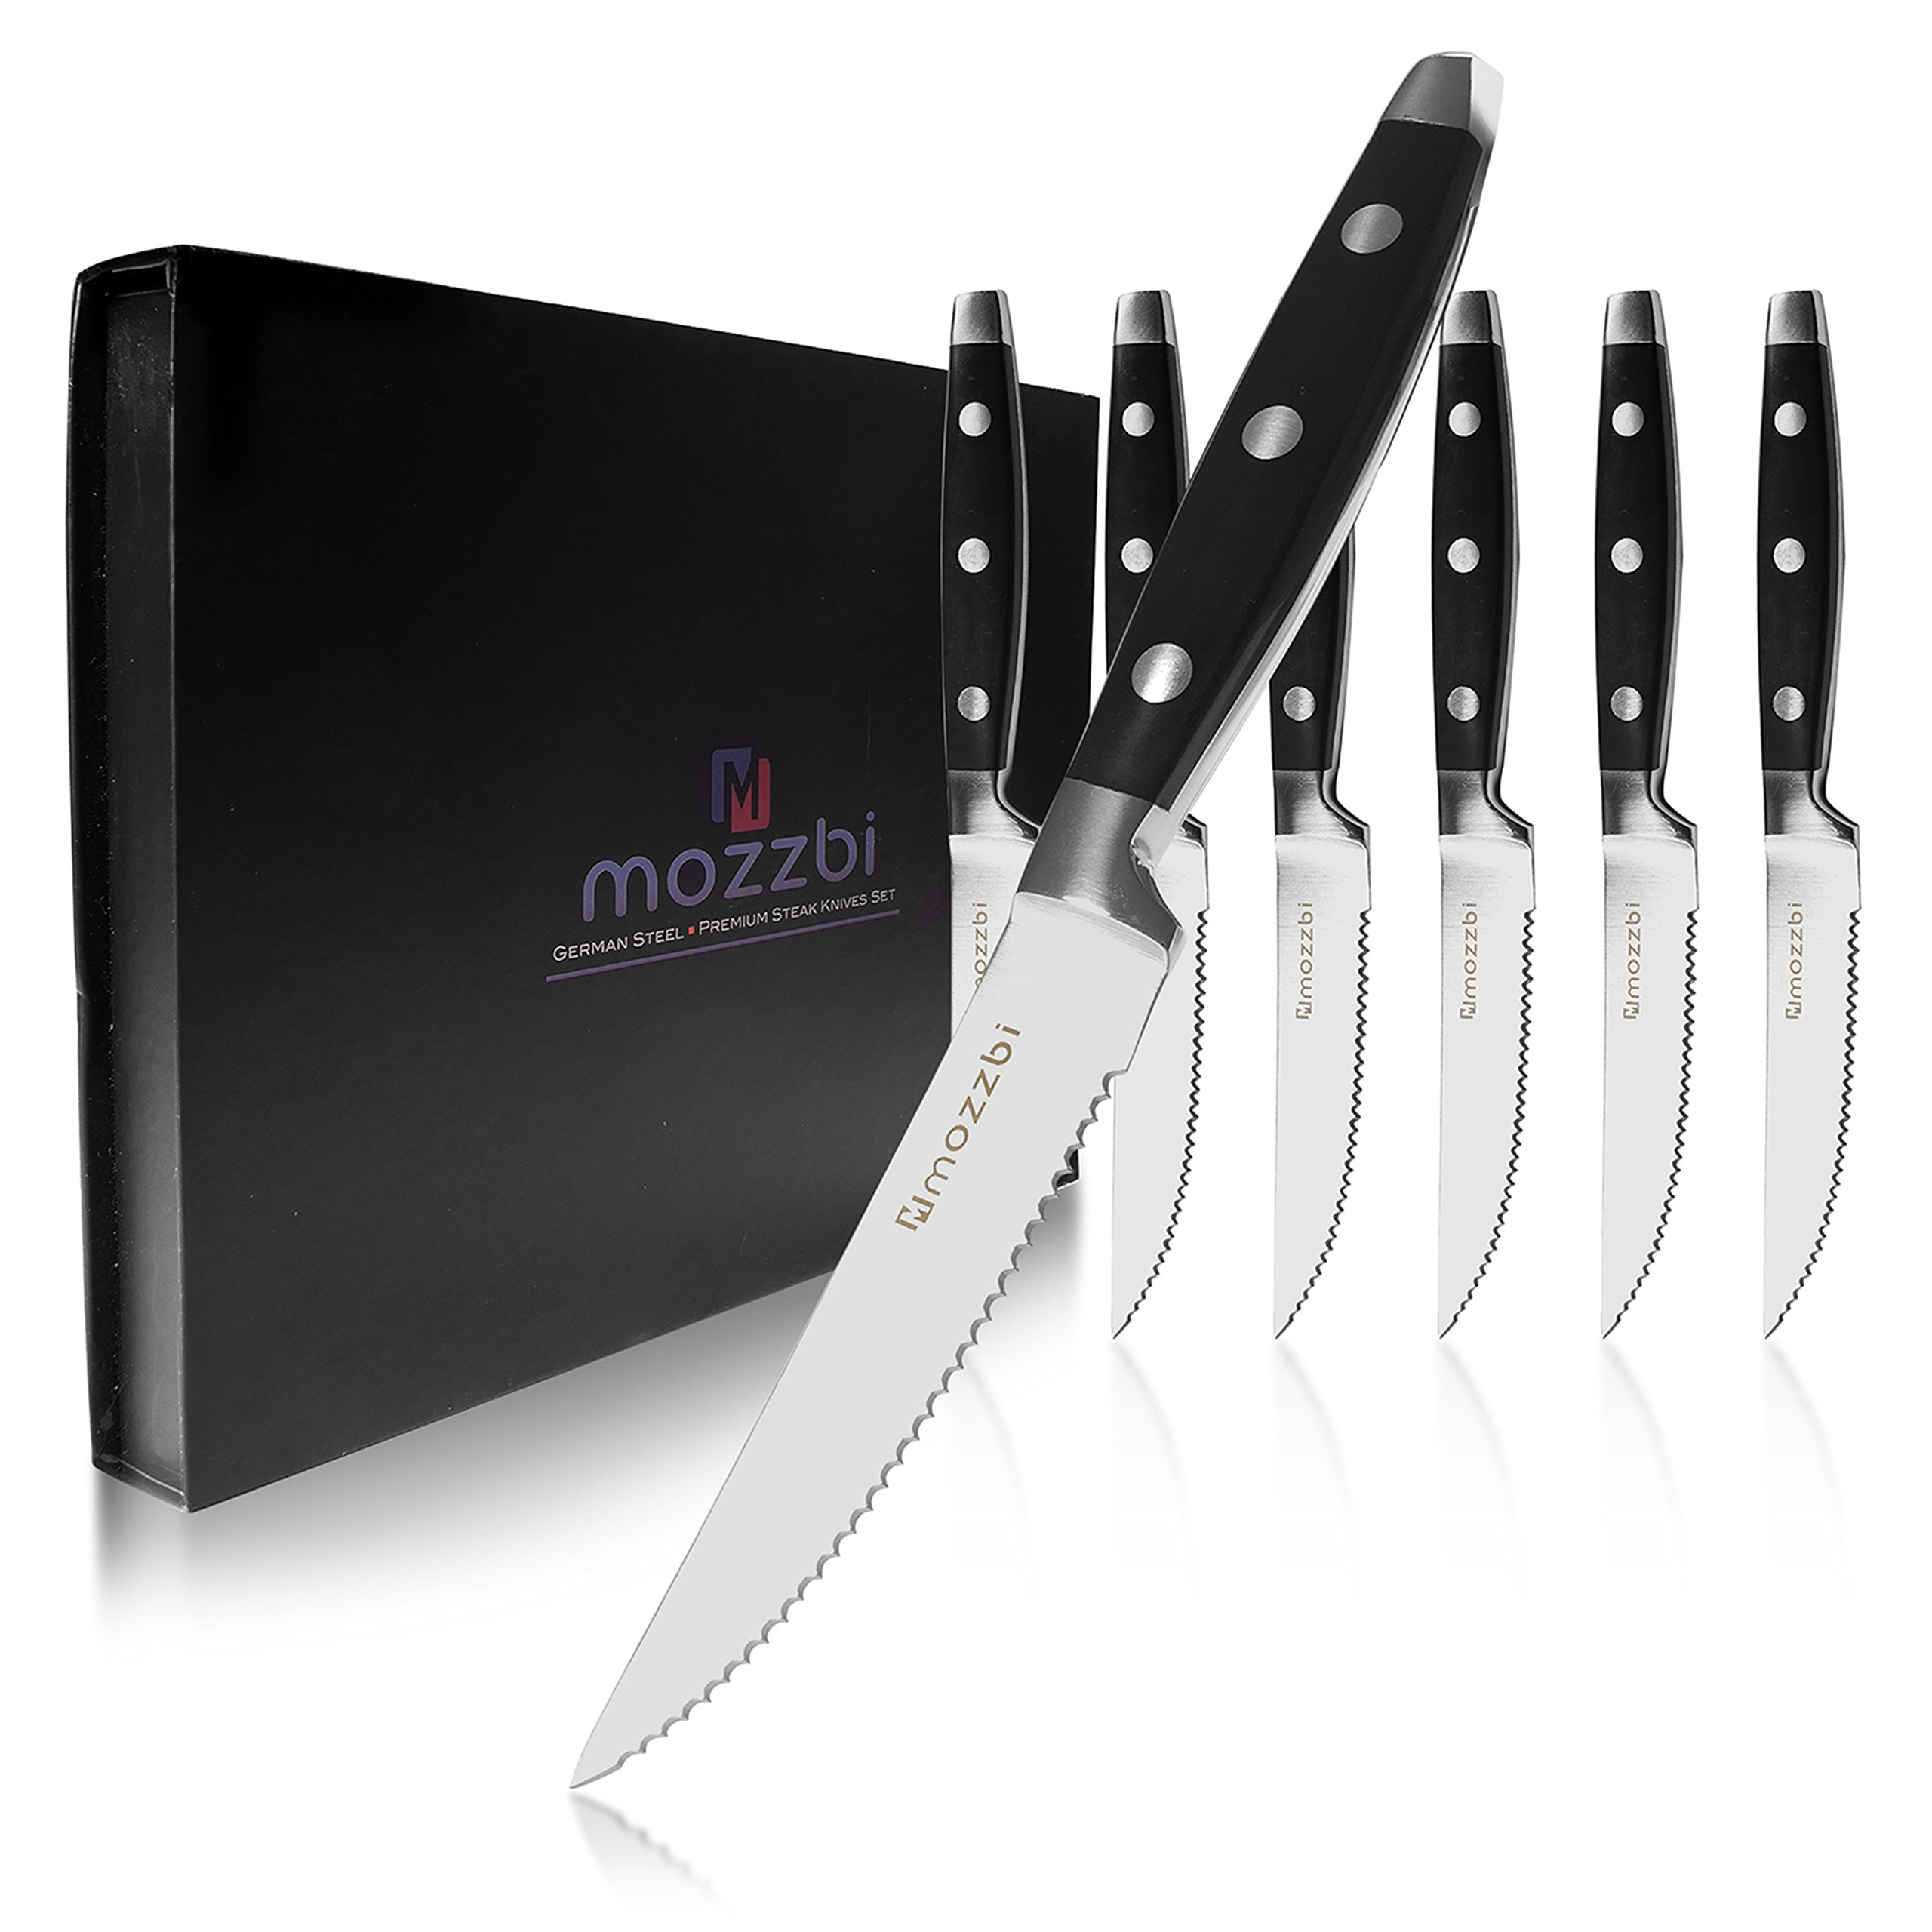 Premium Serrated Steak Knives 6-Piece Laser Cut Ultra-Sharp Stainless Steel Steak Knife, Cutlery Set,Dinner Knives Gift Set By Mozzbi by Mozzbi